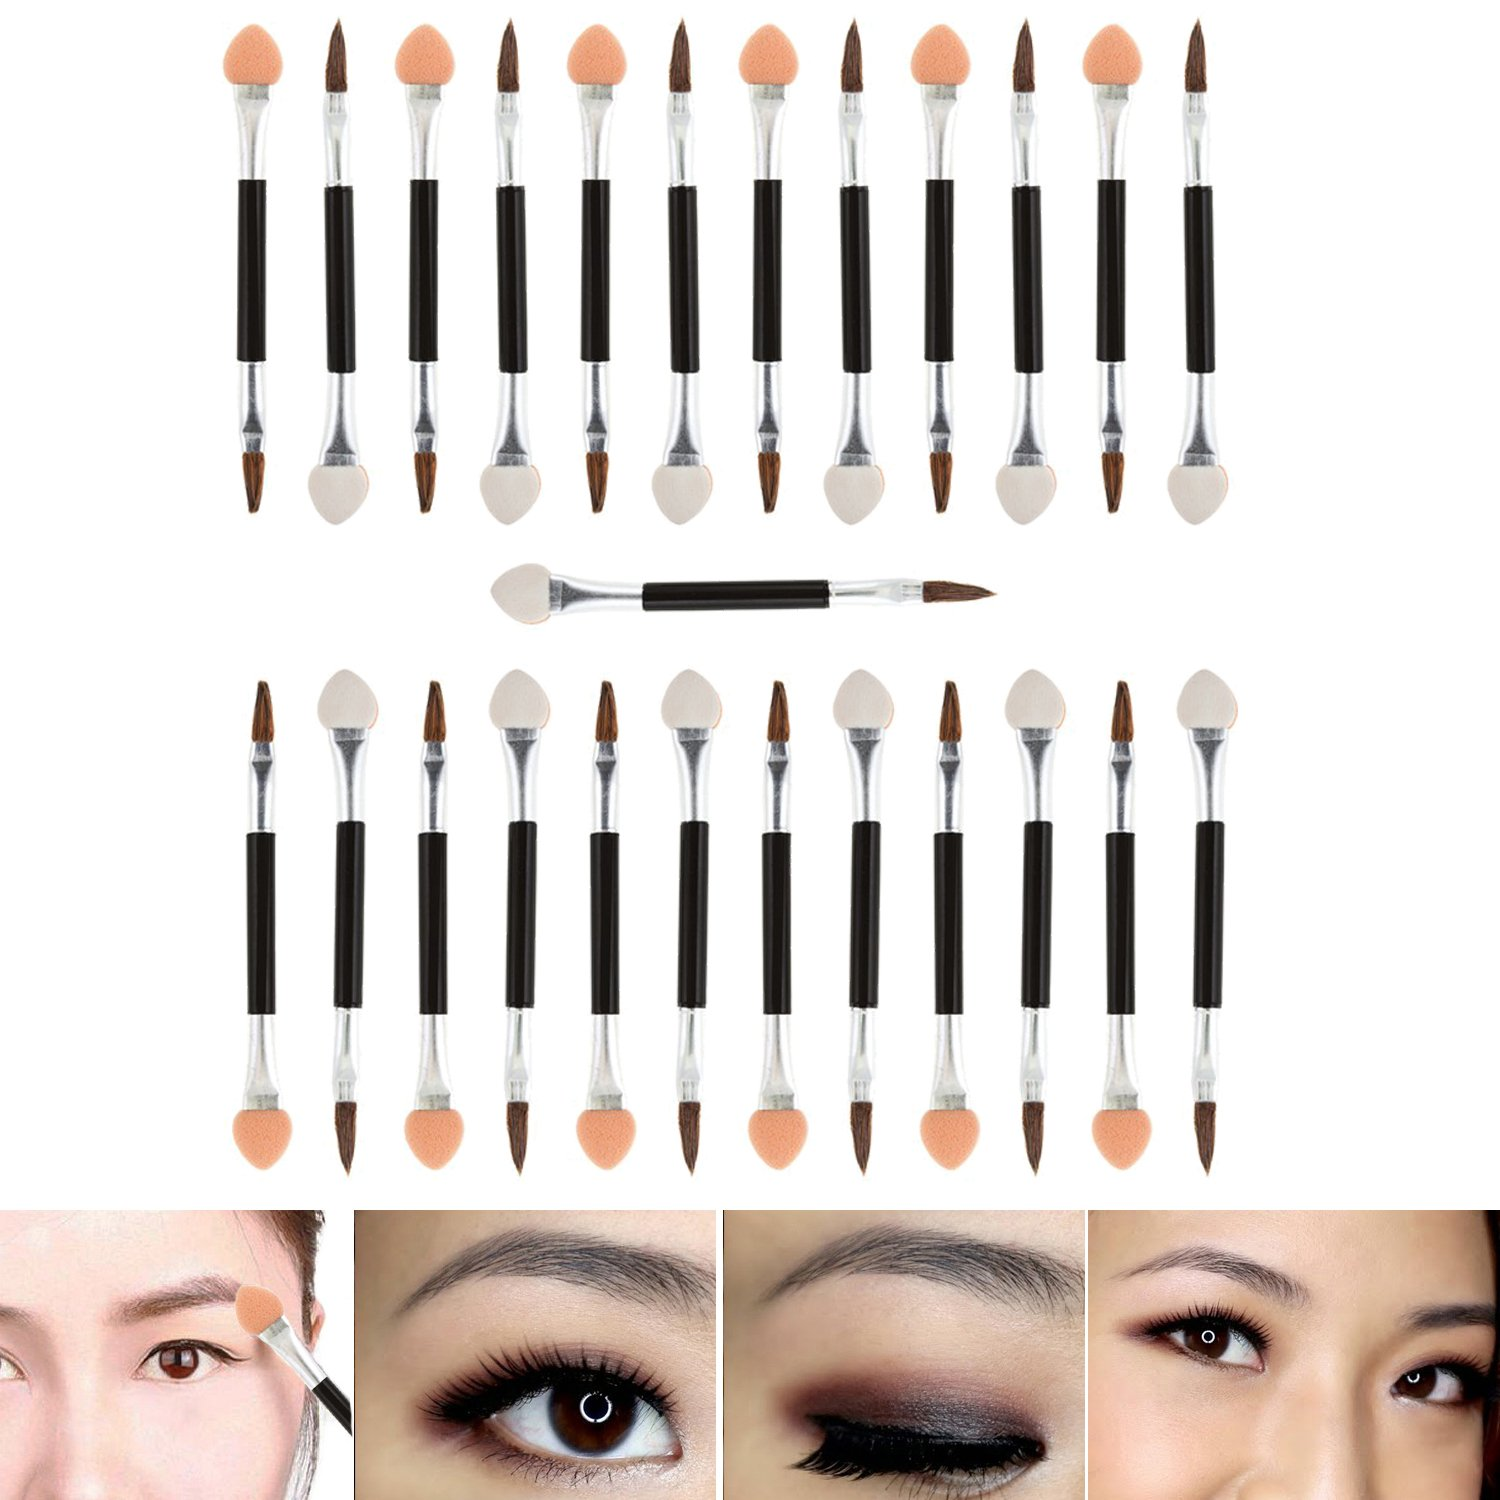 Professional Make Up Artists Set With 25pcs Long Disposable Double Ended Eyeshadows Applicators With Smudge Sponges And Eyes Brushes Makeup Tools By VAGA